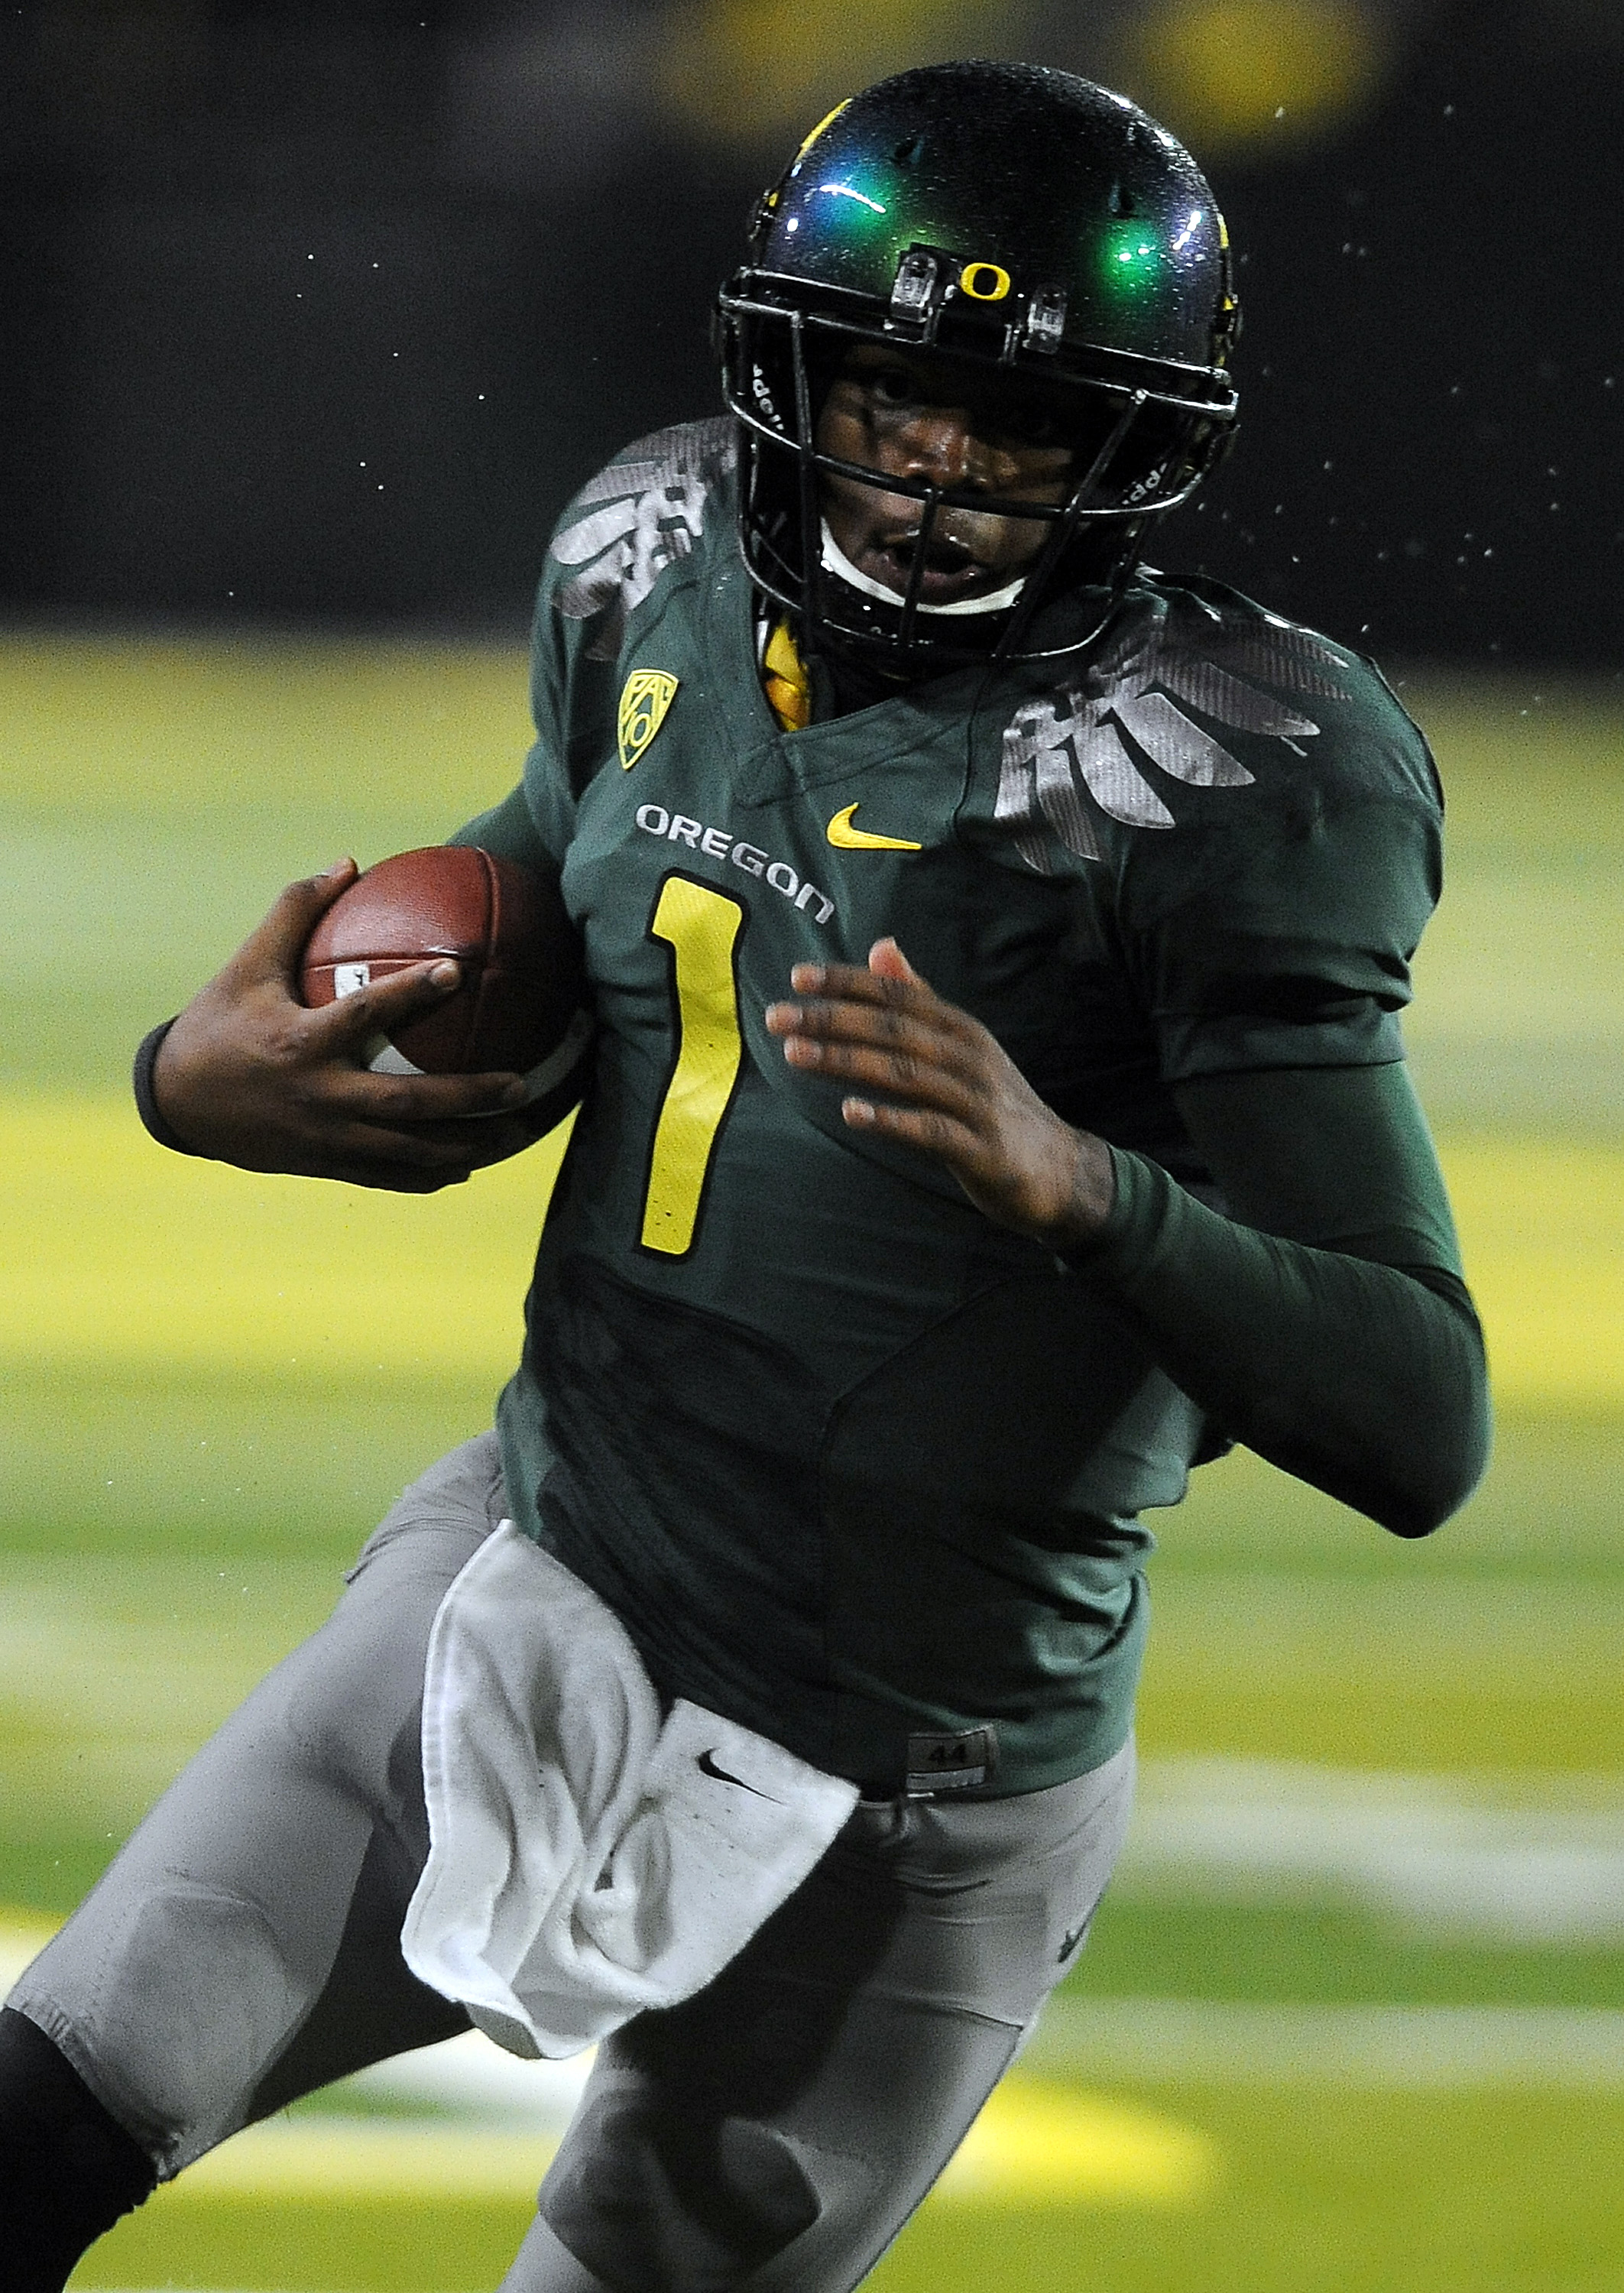 EUGENE, OR - NOVEMBER 26: Quarterback Darron Thomas #1 of the Oregon Ducks heads for the end zone and a touchdown in the third quarter of the game against the Arizona Wildcats at Autzen Stadium on November 26, 2010 in Eugene, Oregon. The Ducks won the gam